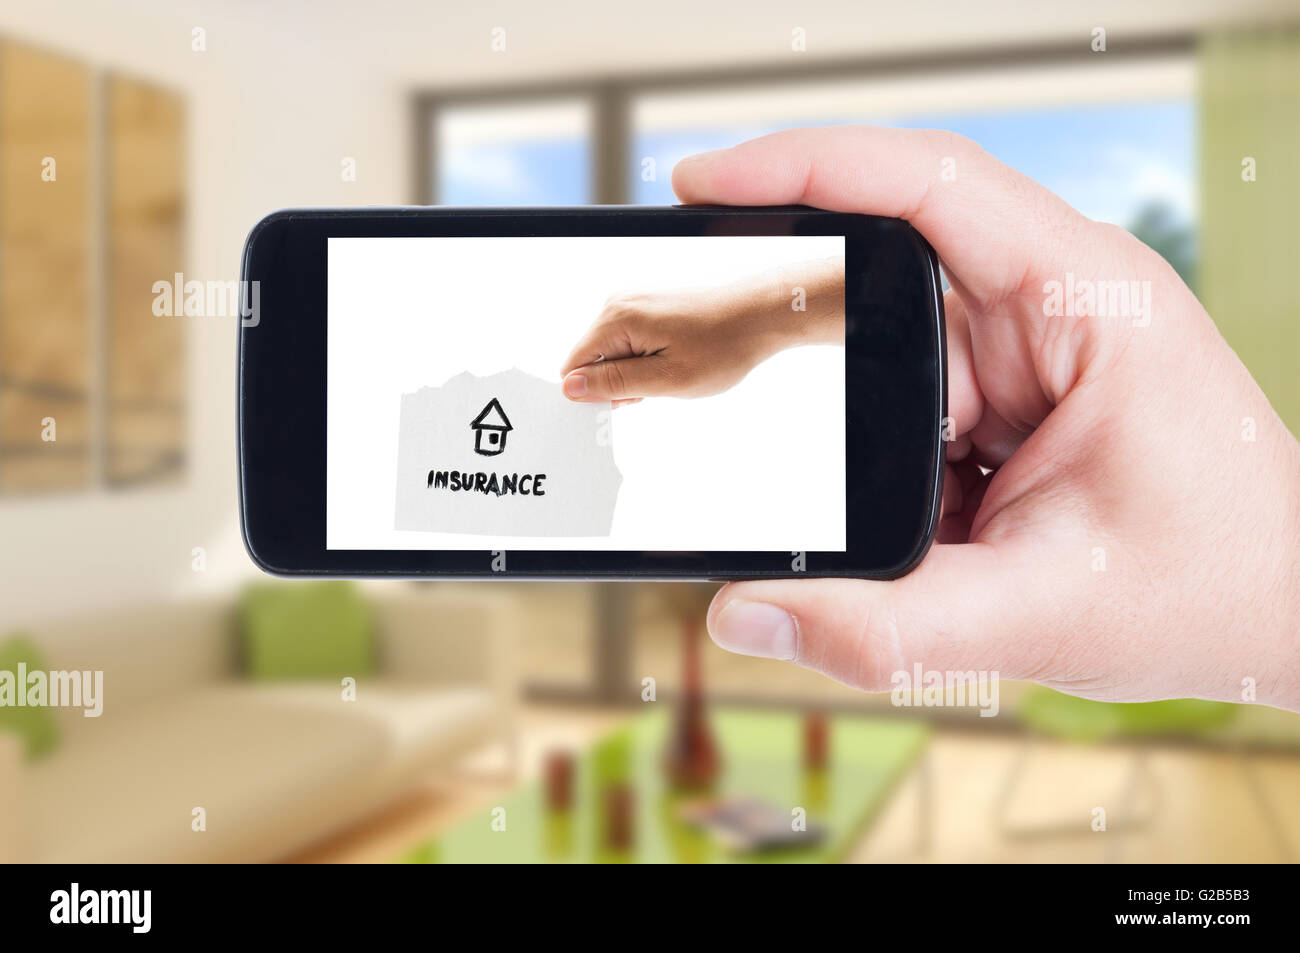 House insurance concept on smartphone display or cellphone screen - Stock Image